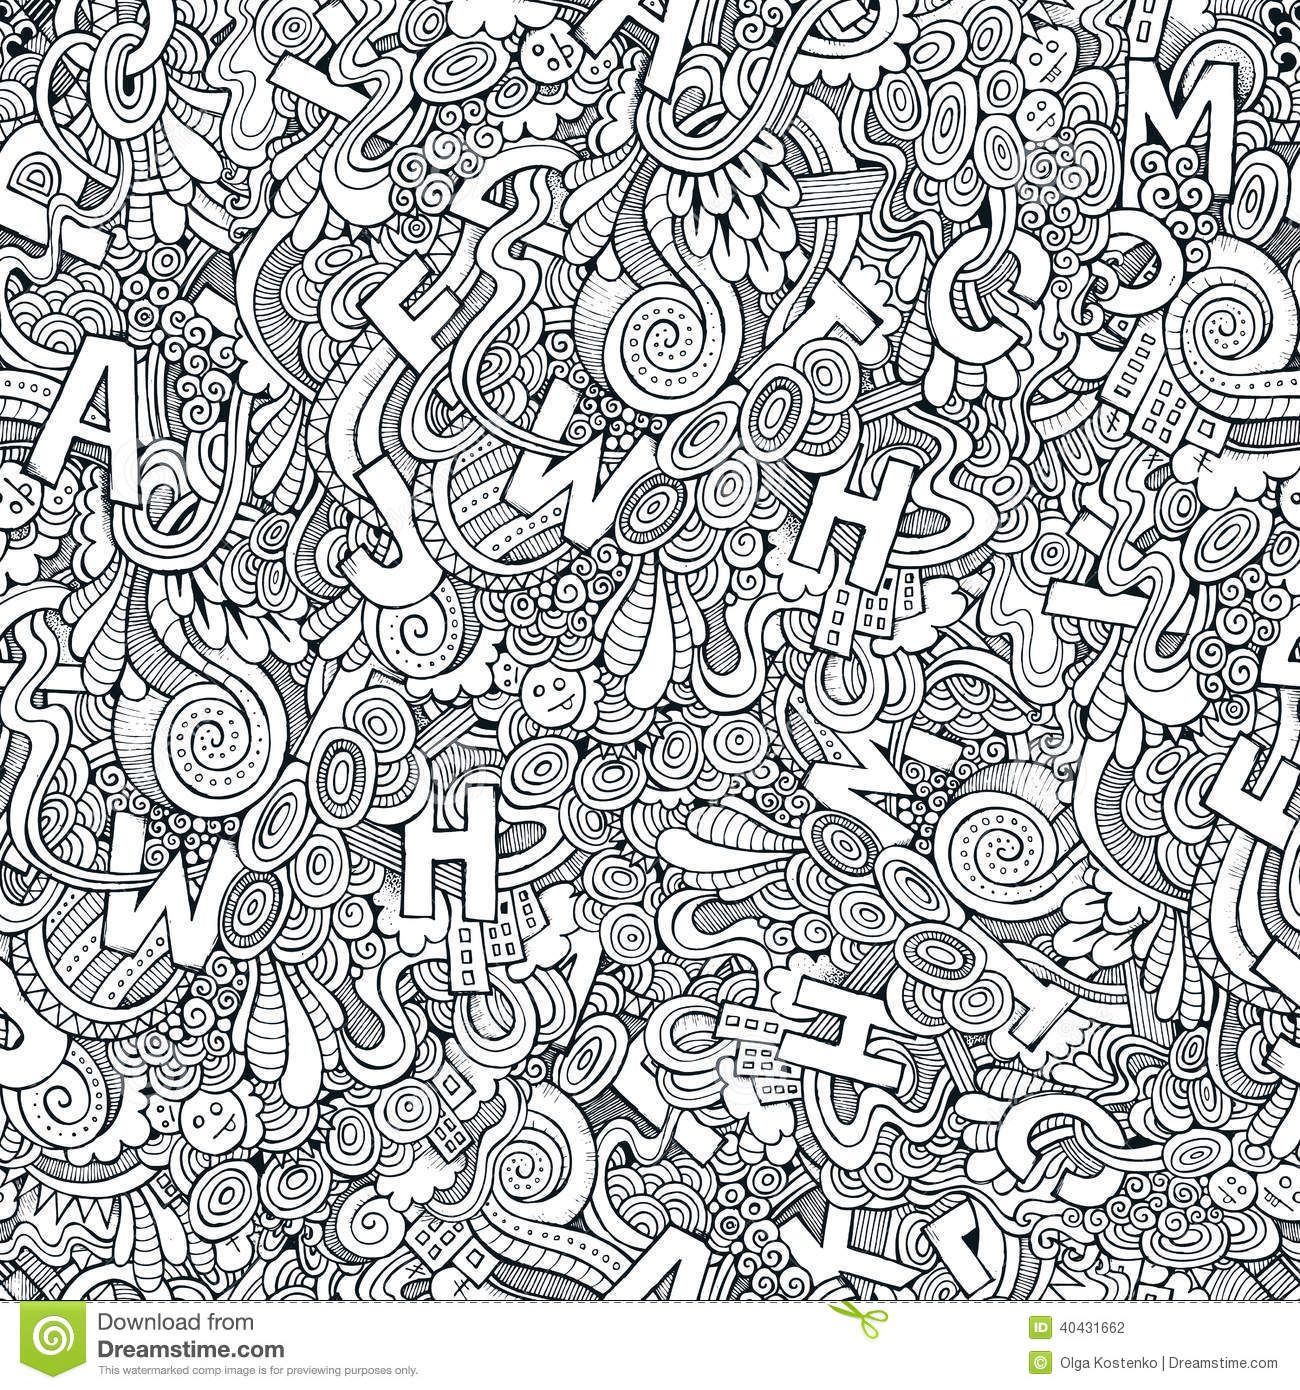 doodles 58 advanced coloring pages - Advanced Coloring Pages Letters